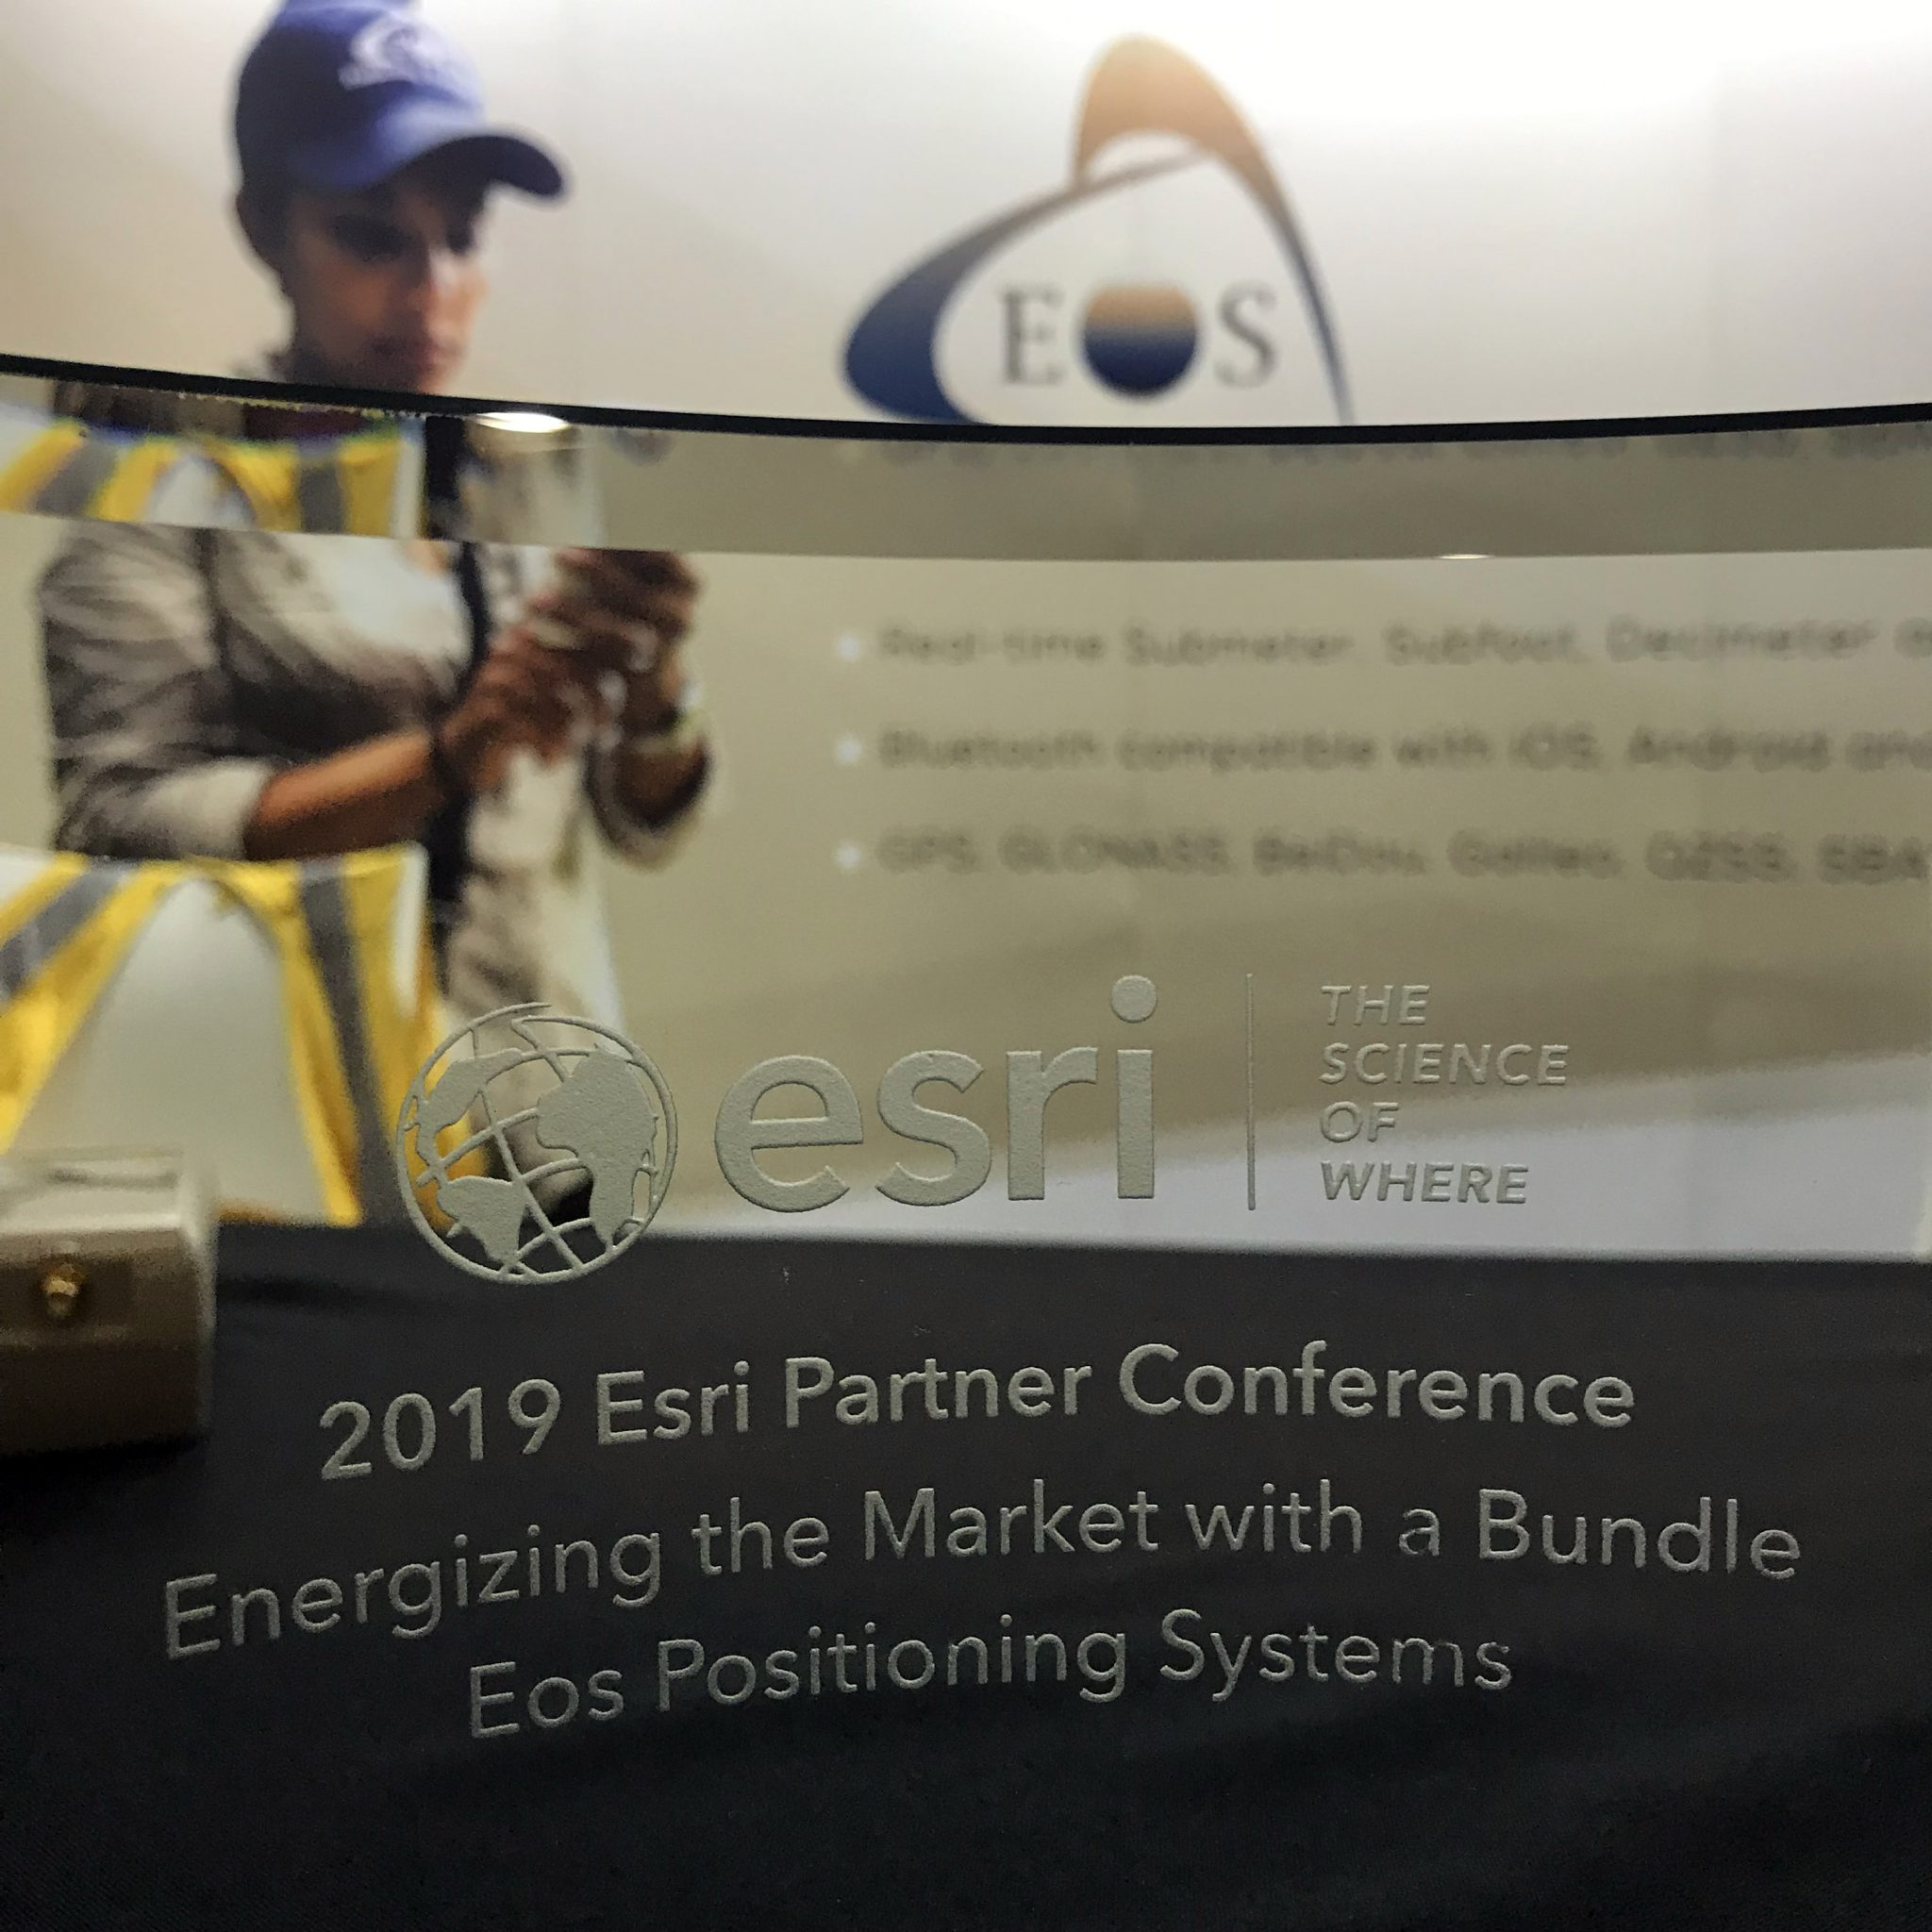 """IMAGE – PRESS RELEASE – 2019 EPC AWARD – Eos Positioning Systems """"Energizing the Market with a Bundle"""" Award 2019-03-04 10.58.16 copy"""